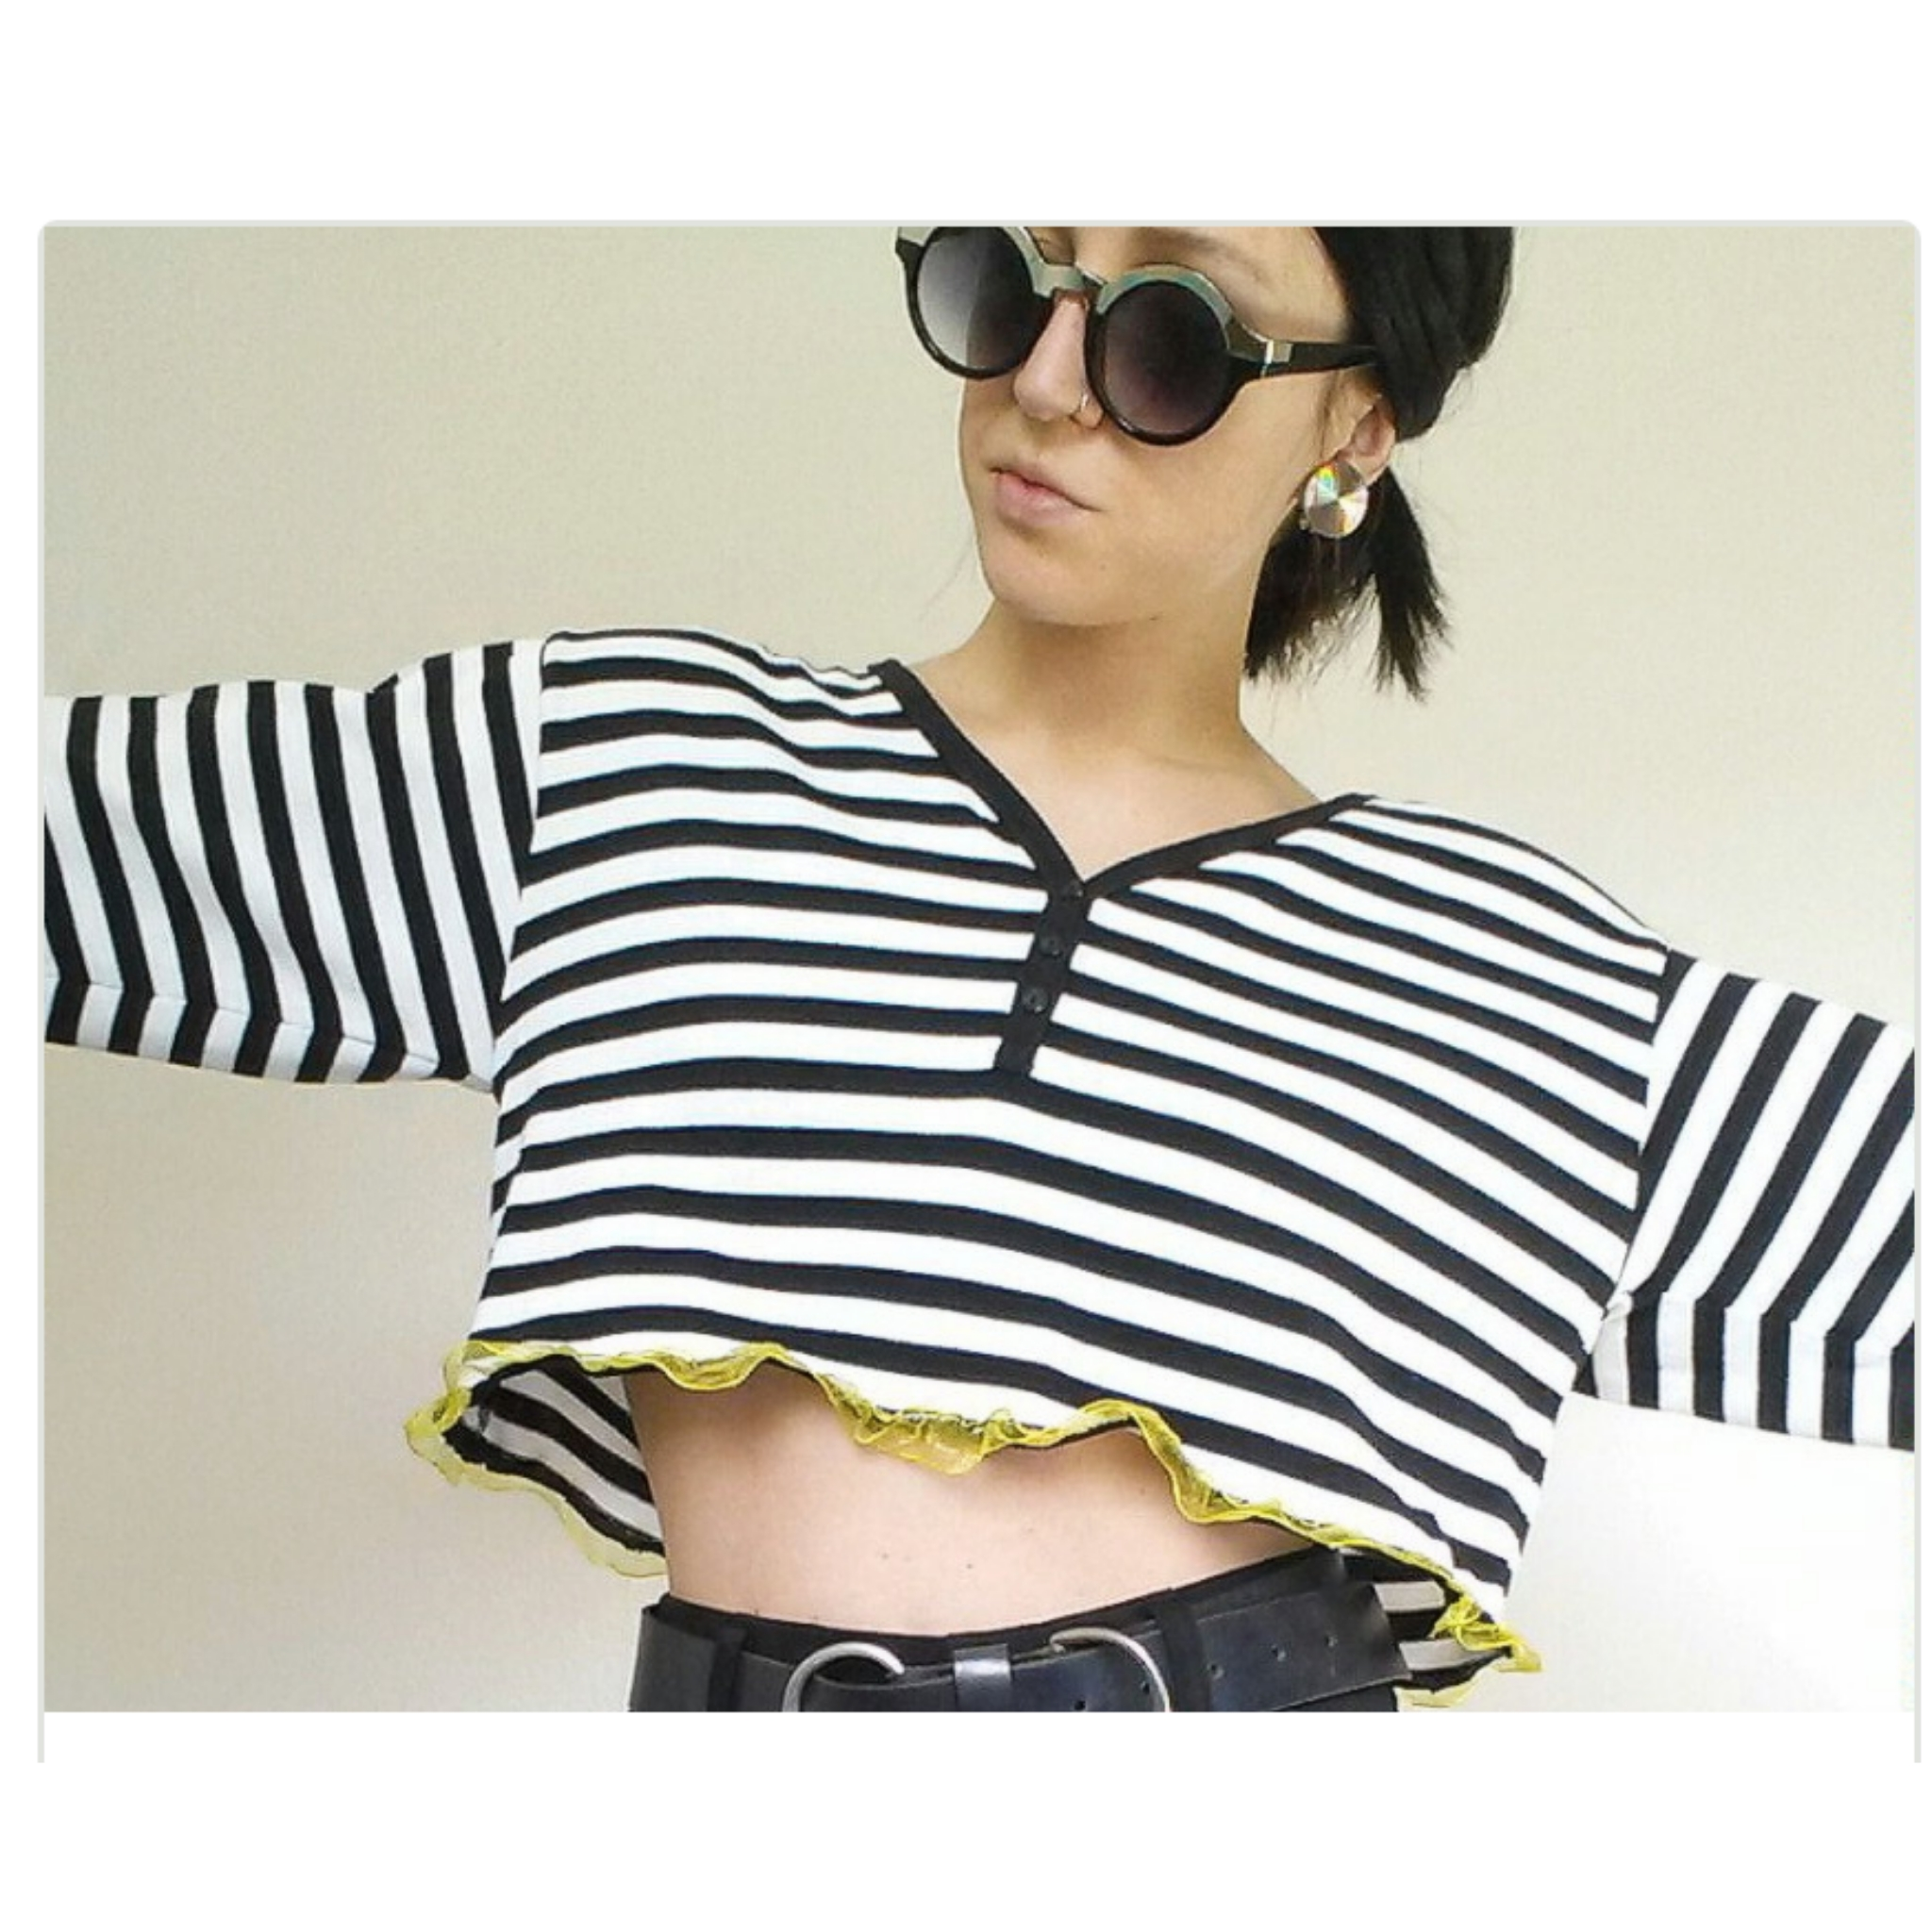 8840fa87aa7991 Vintage 90 s Striped Crop Top - Cropped Long Sleeve Shirt - Neon ...